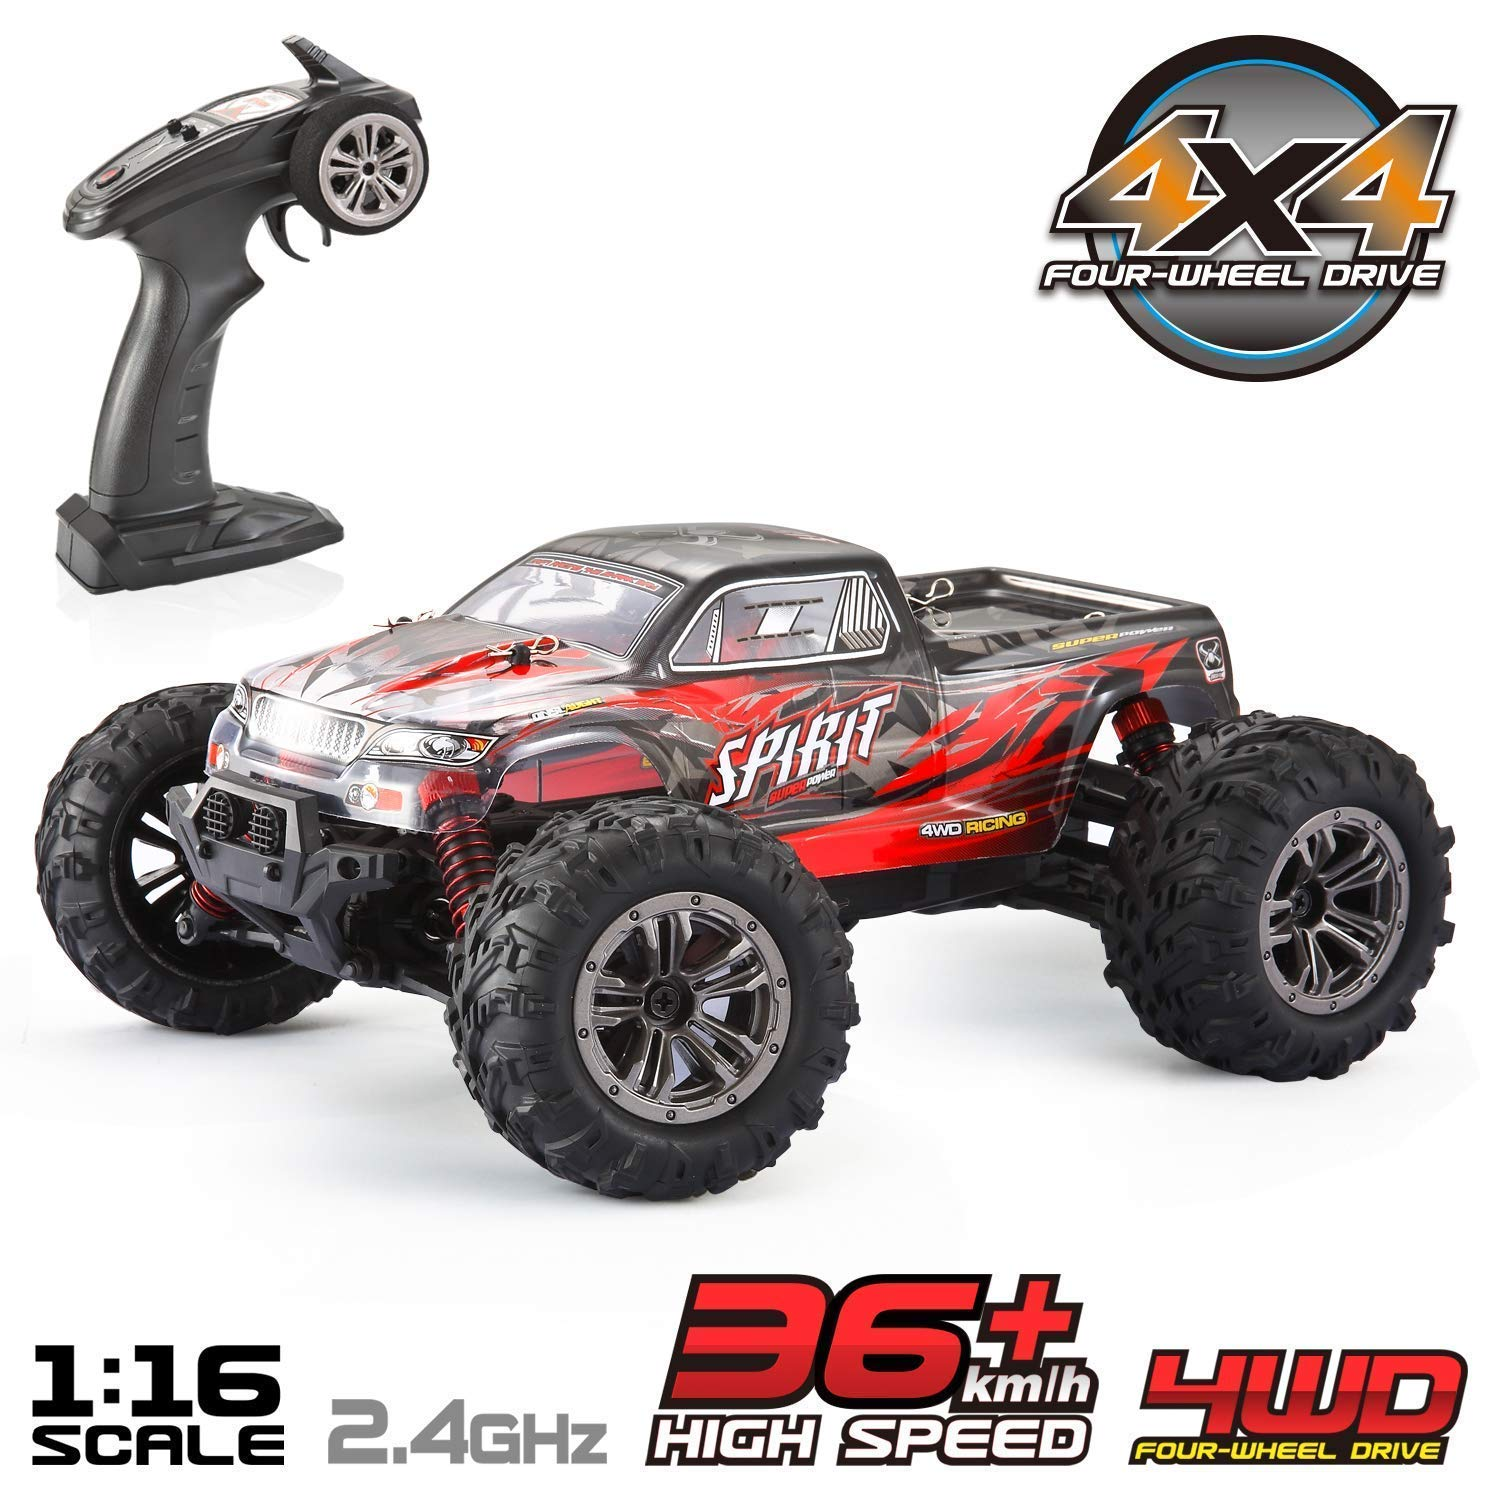 VATOS Remote Control Car High Speed Off-Road Vehicle 1:16 Scale 36km/h 4WD 2.4GHz Electric Racing Car RC Buggy Vehicle Truck Buggy Crawler Toy Car for Adults and Kids by VATOS (Image #1)